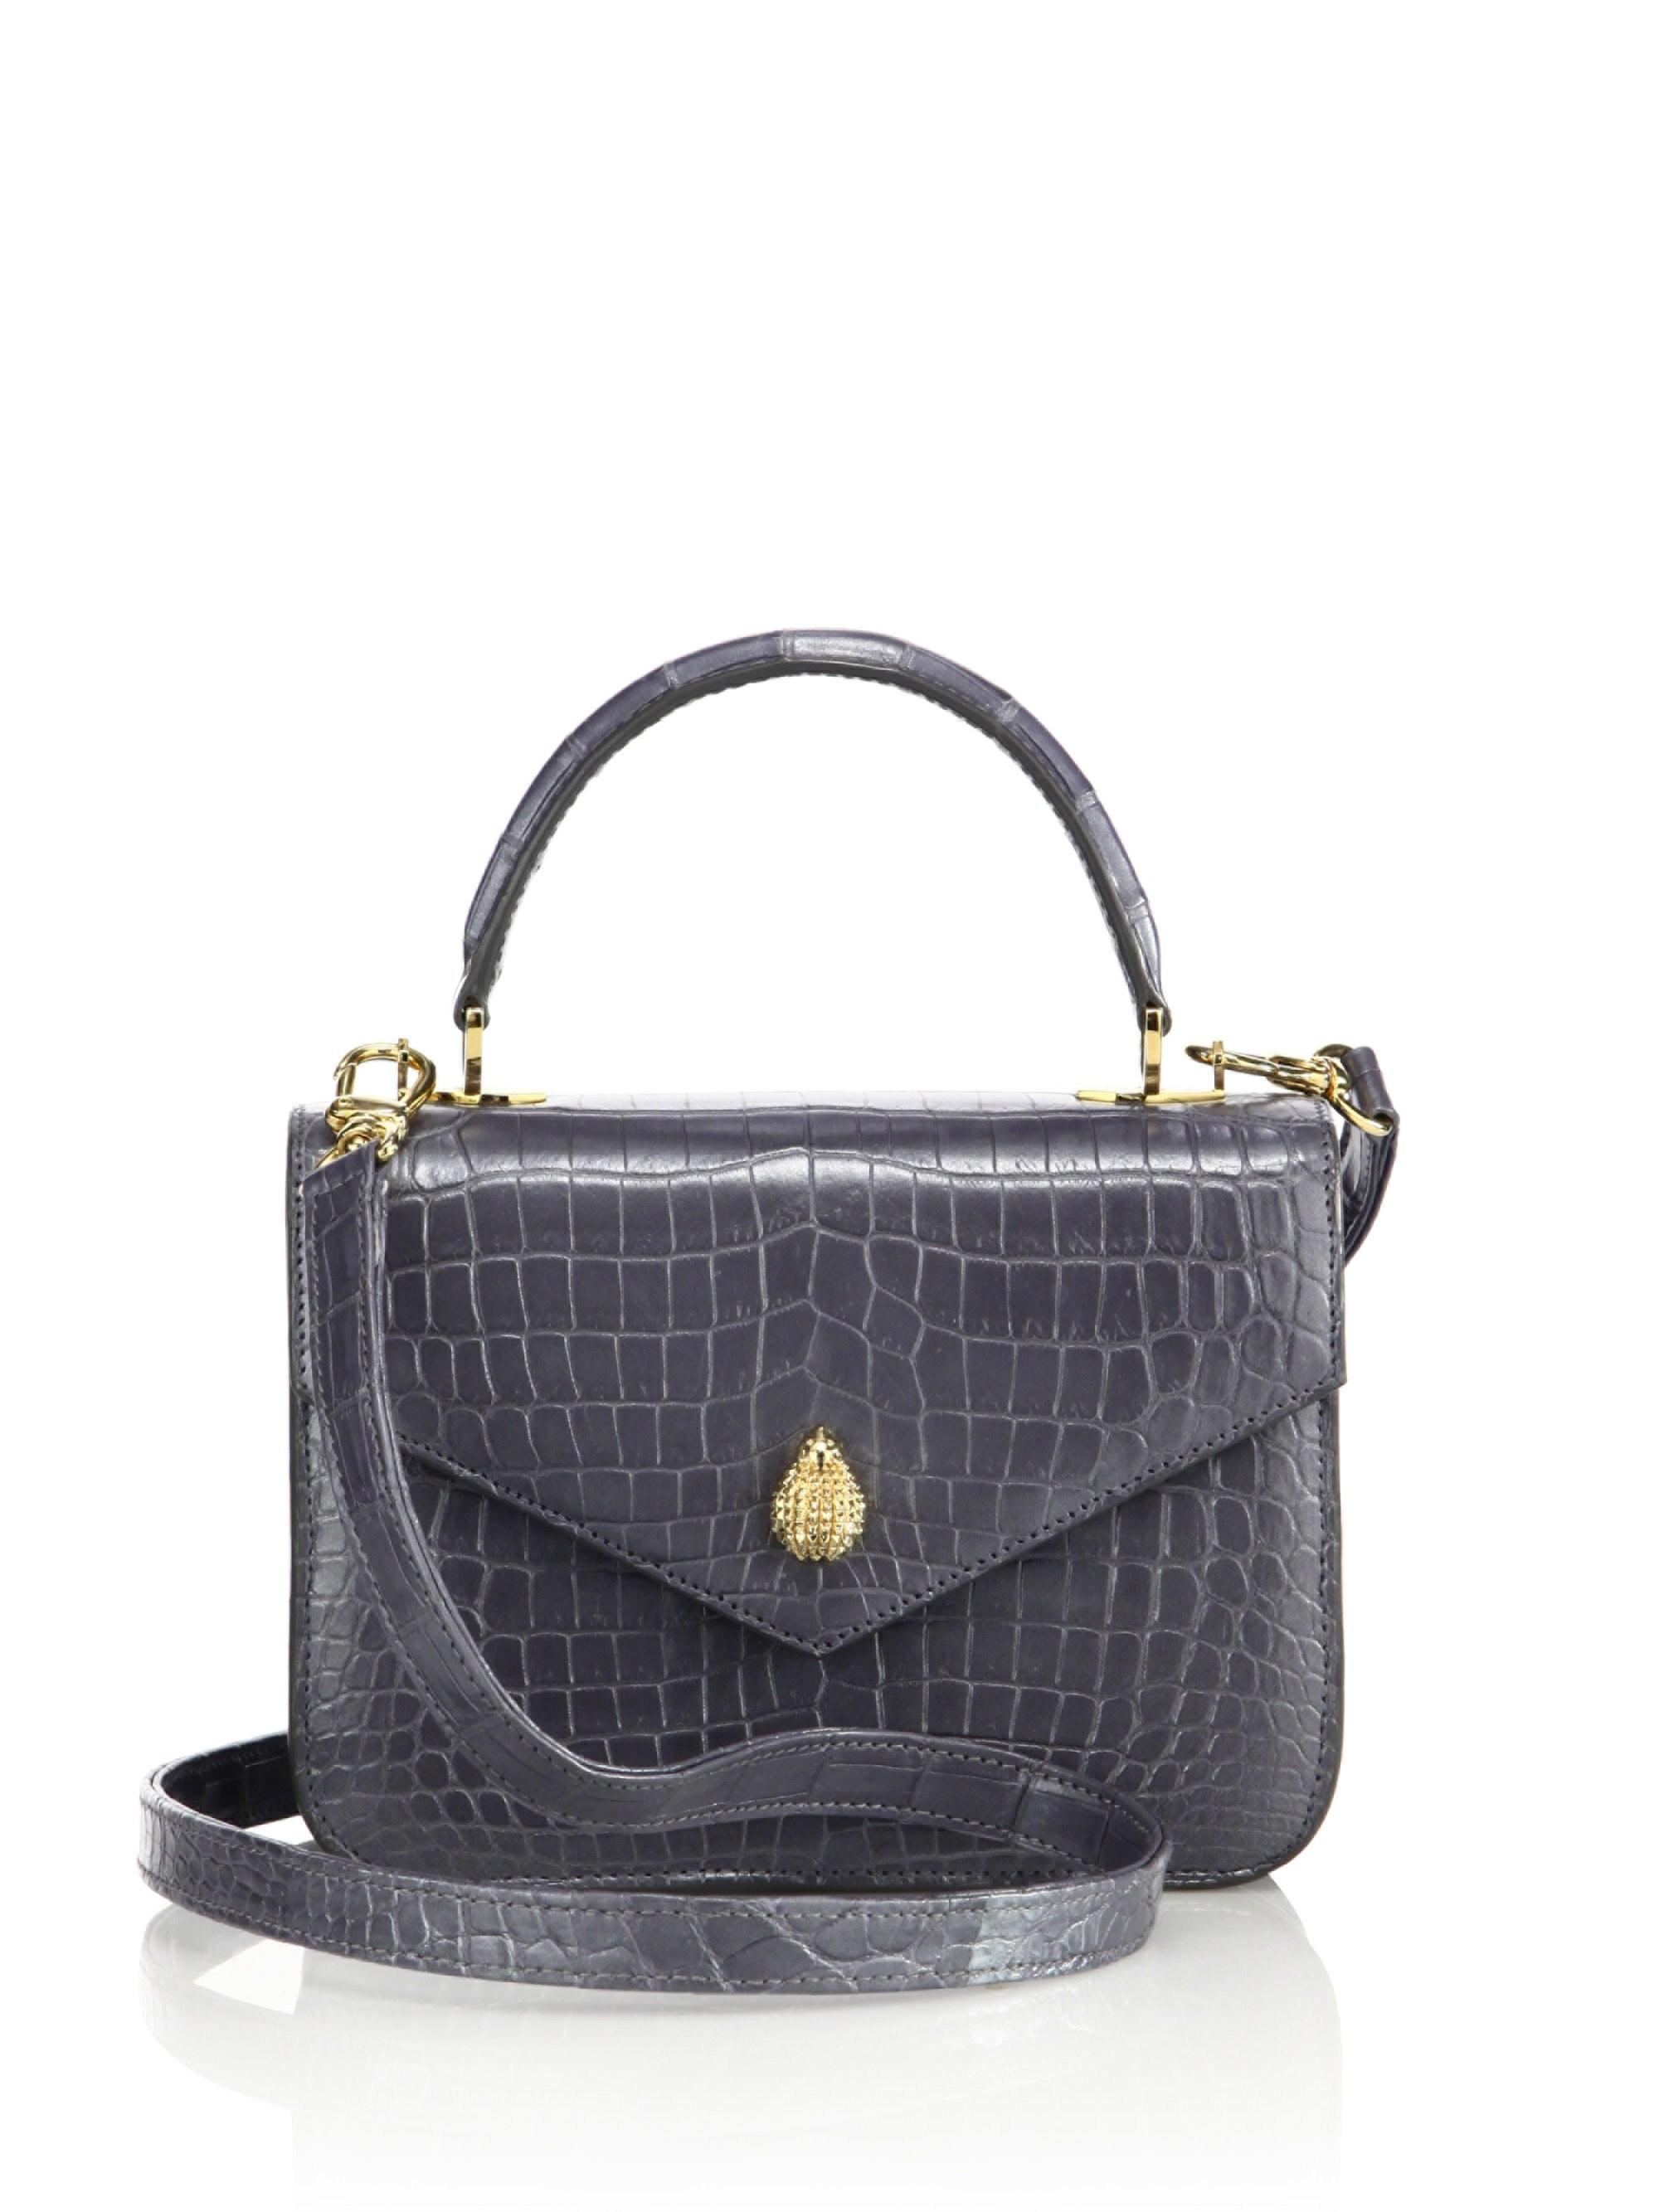 60503459f1 Gallery. Previously sold at  Saks Fifth Avenue · Women s ...